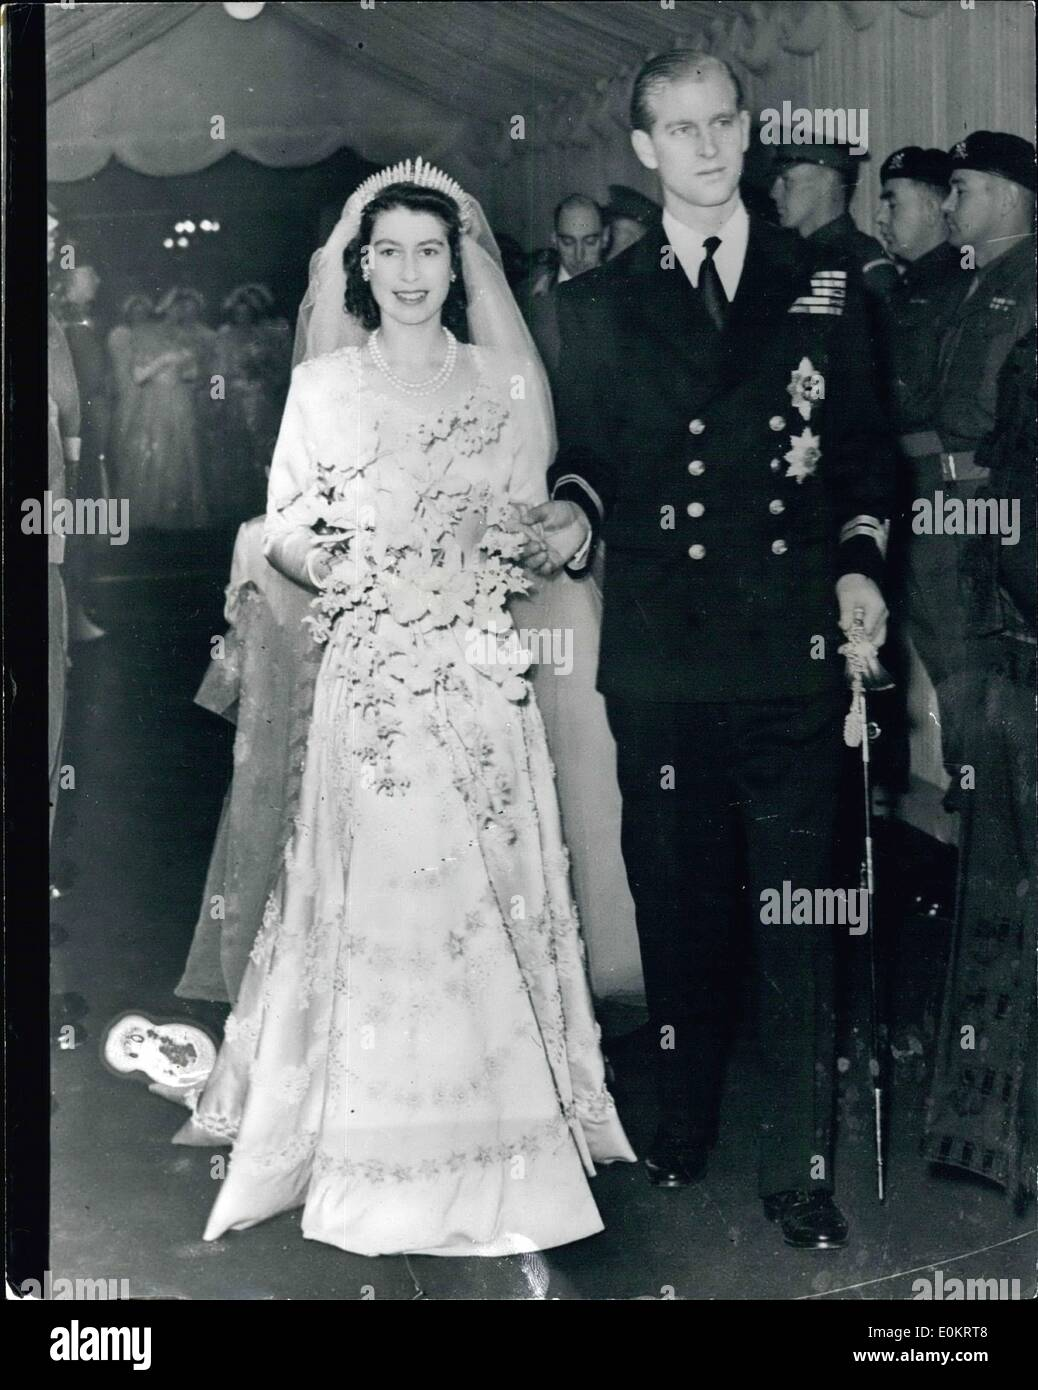 Queen Elizabeth Hochzeit 1947 Queen Elizabeth Wedding Stockfotos 1947 Queen Elizabeth